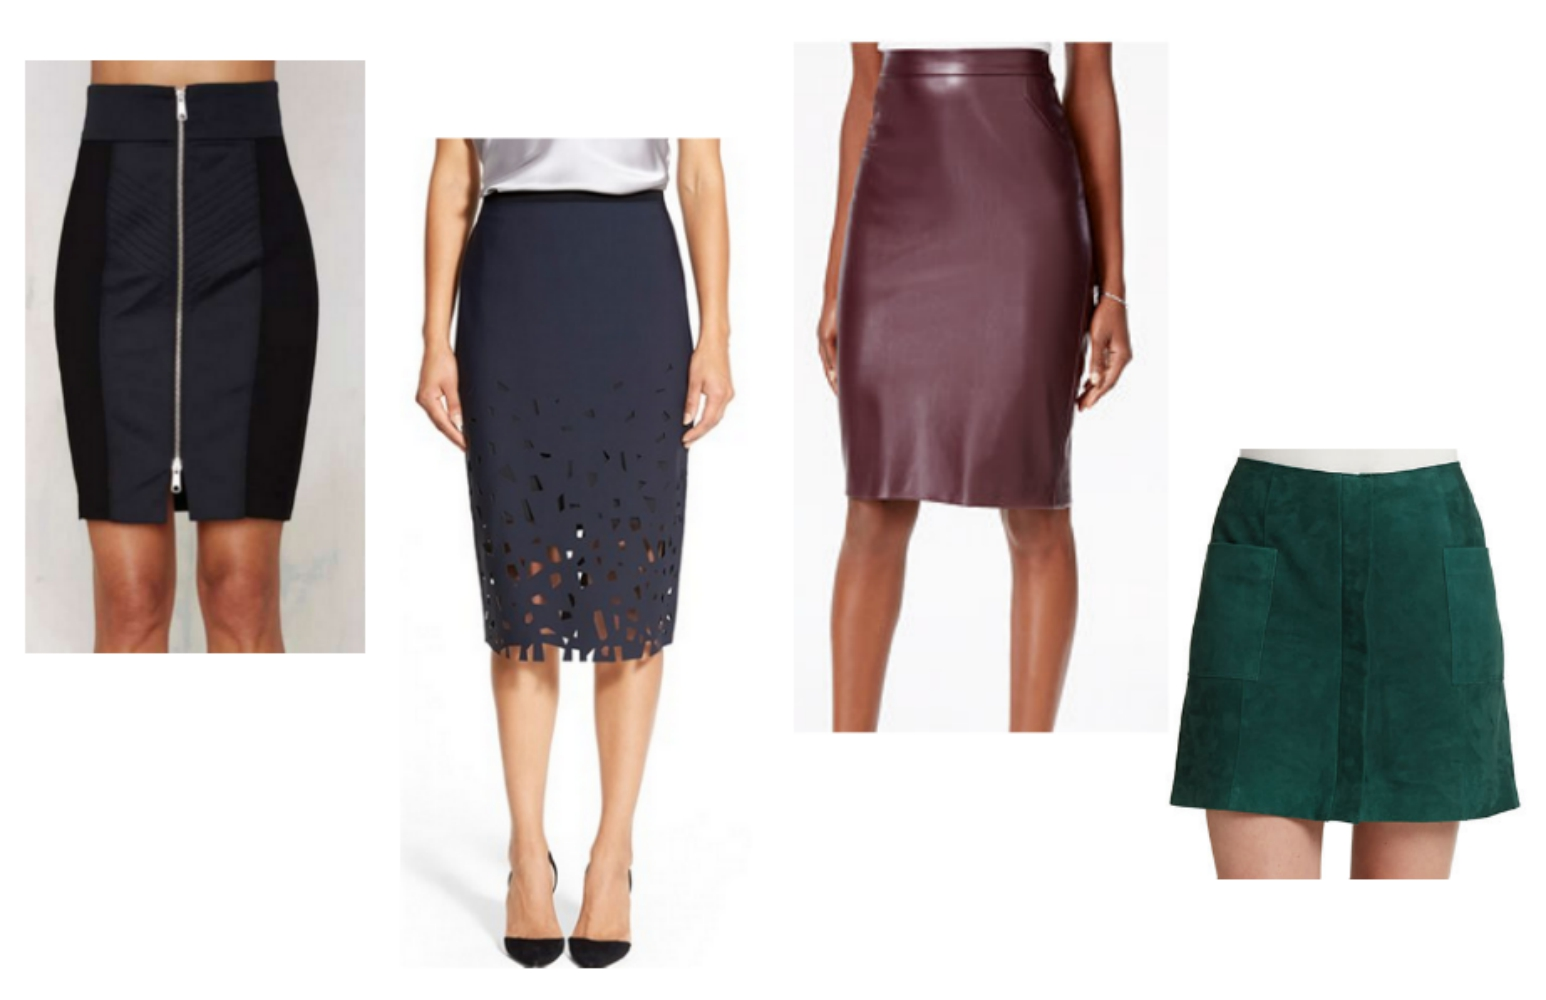 fashion-trend-skirts-button-front